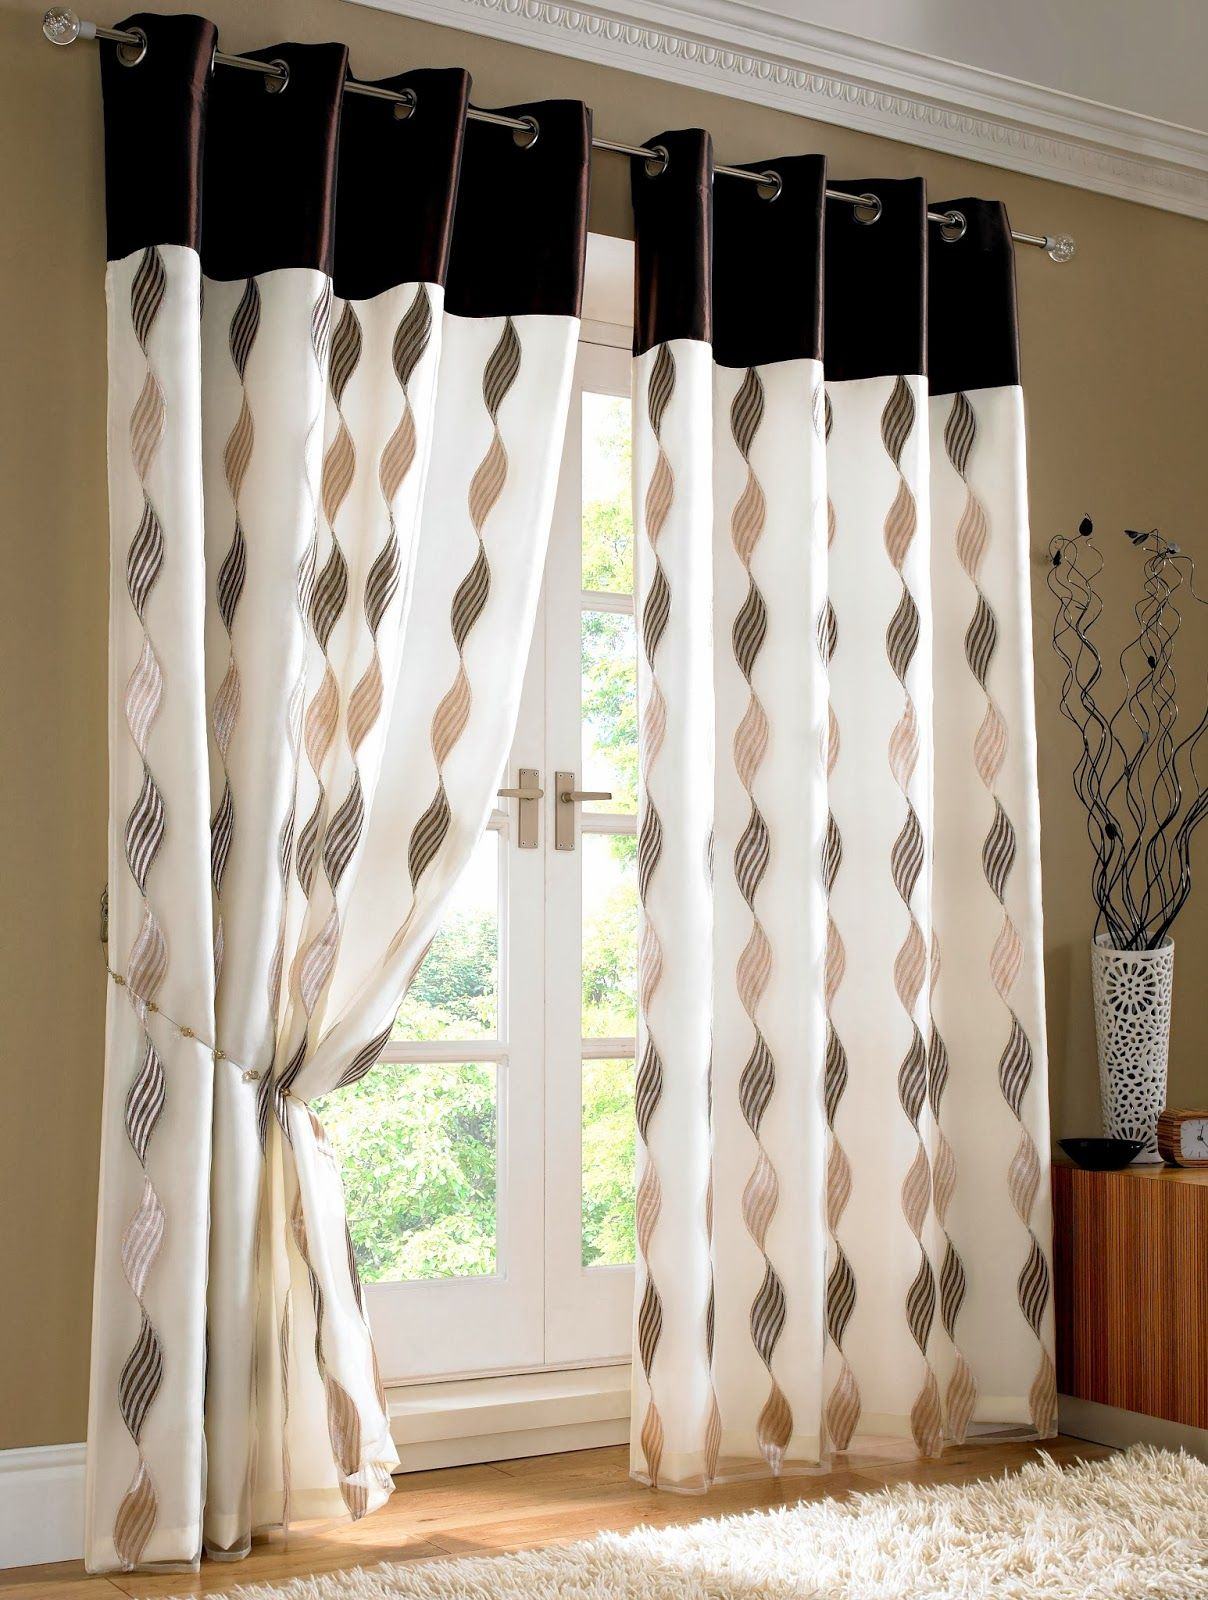 10 Classy Contemporary Curtain Designs Dining Room Curtains